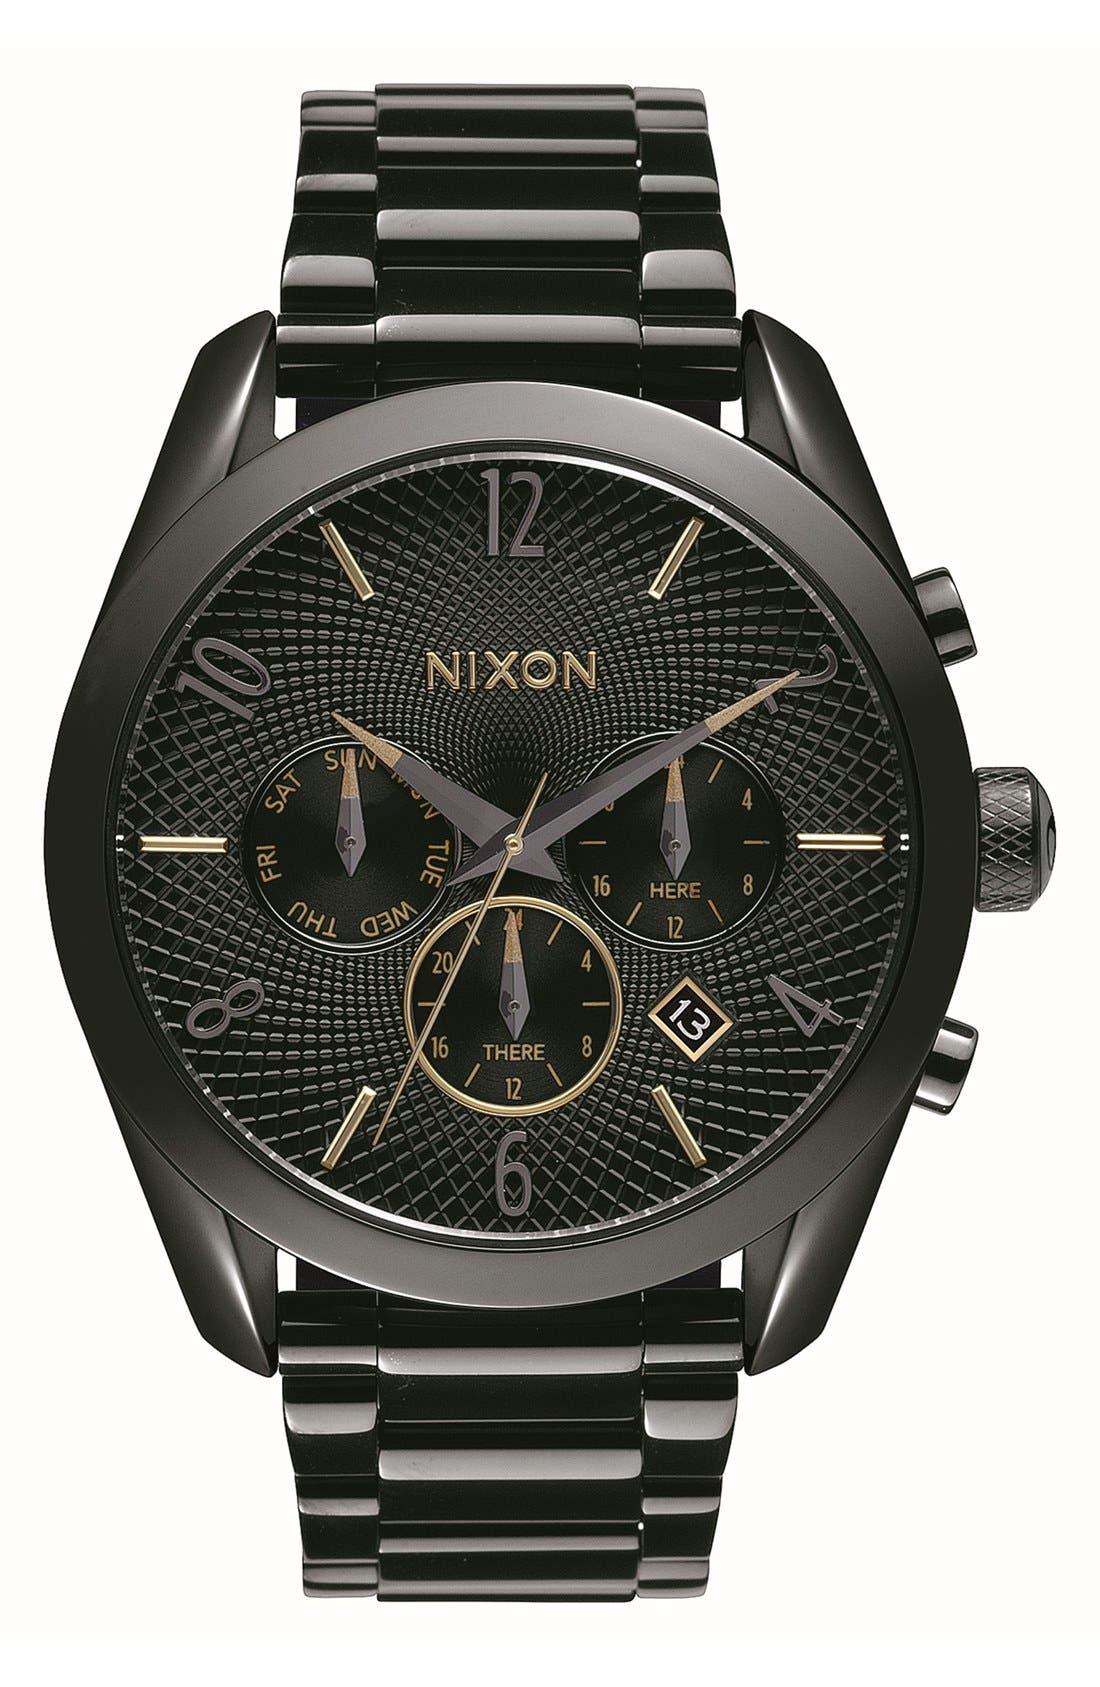 Main Image - Nixon 'Bullet' Guilloche Chronograph Bracelet Watch, 42mm